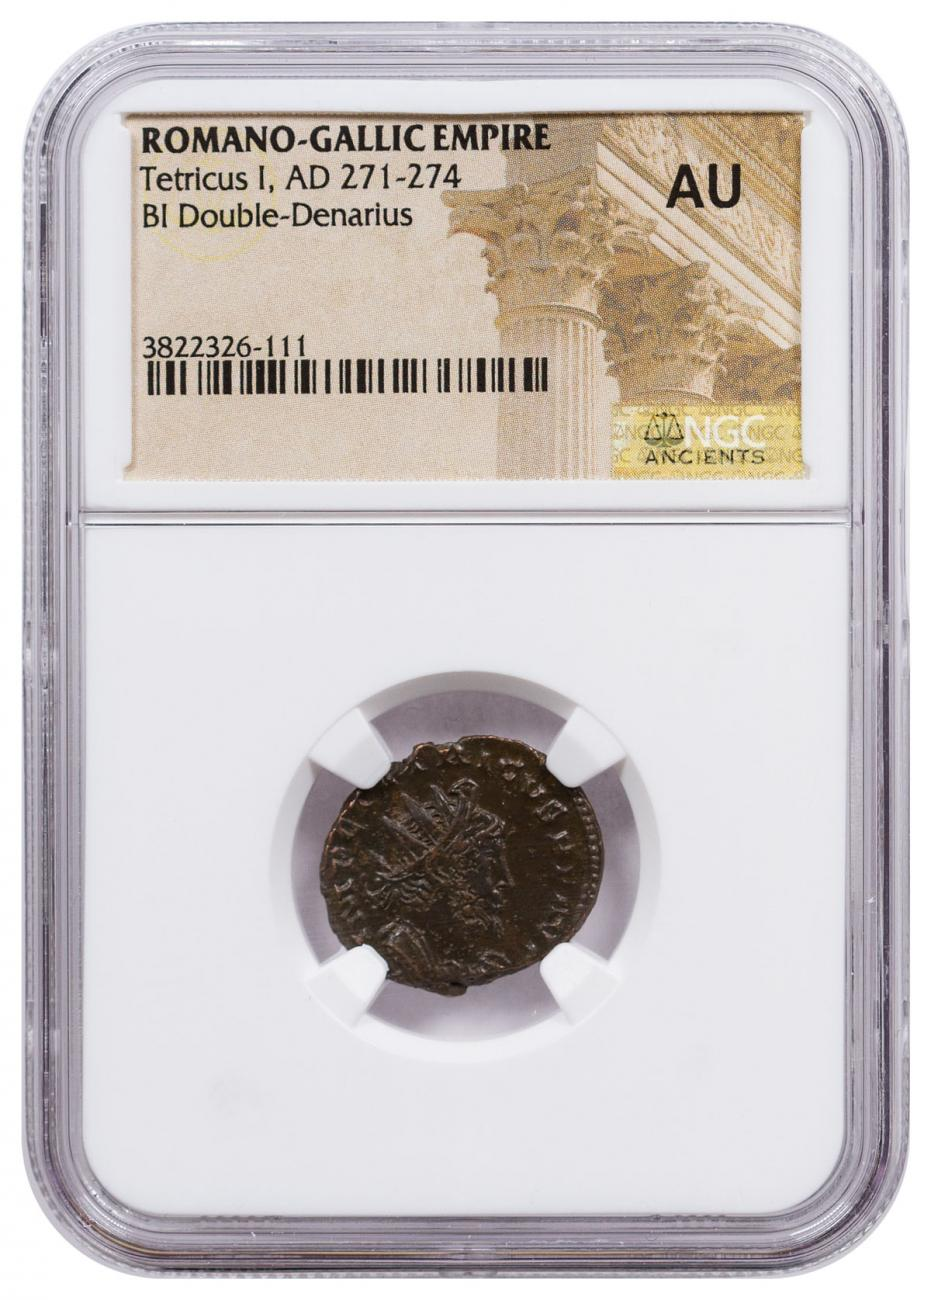 Romano-Gallic Empire, Billon Double Denarius of Tetricus I (AD 271-274) NGC AU